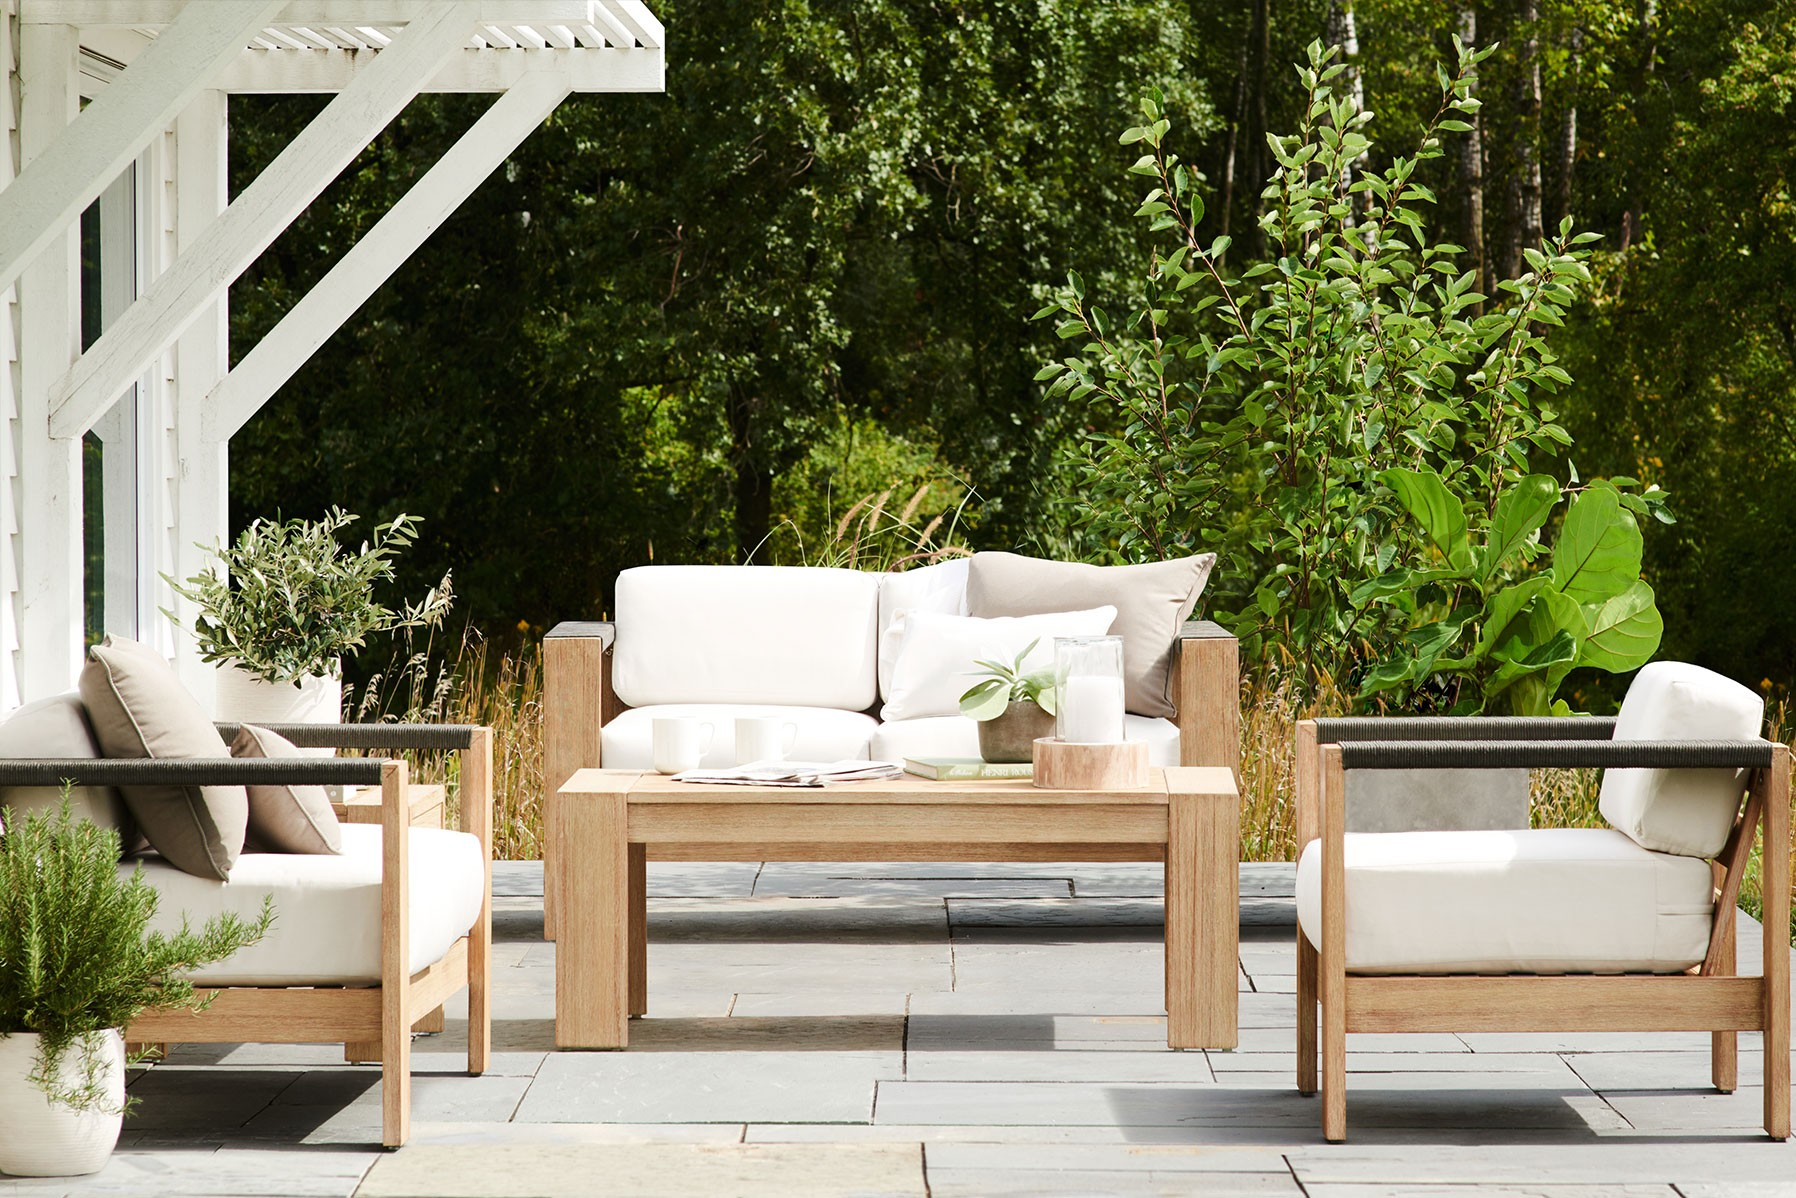 Image Result For Outdoor Food Table Ideas